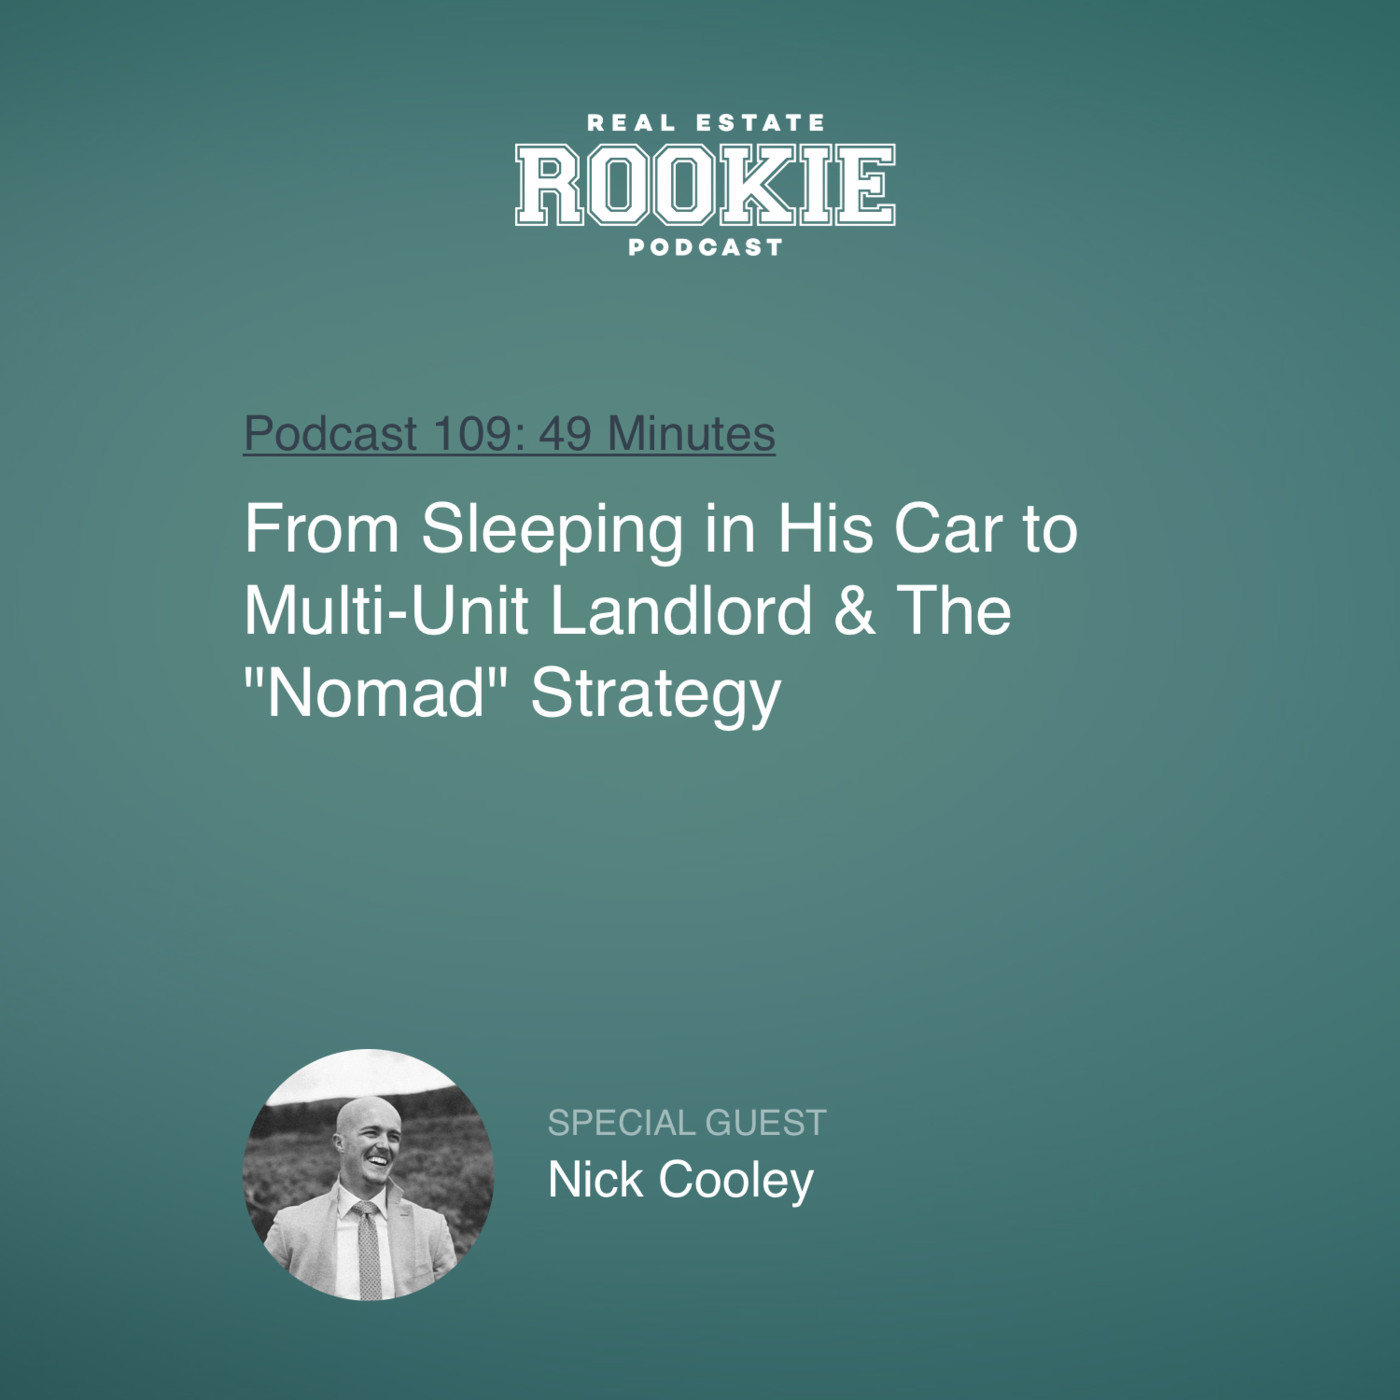 """From Sleeping in His Car to Multi-Unit Landlord & The """"Nomad"""" Strategy"""